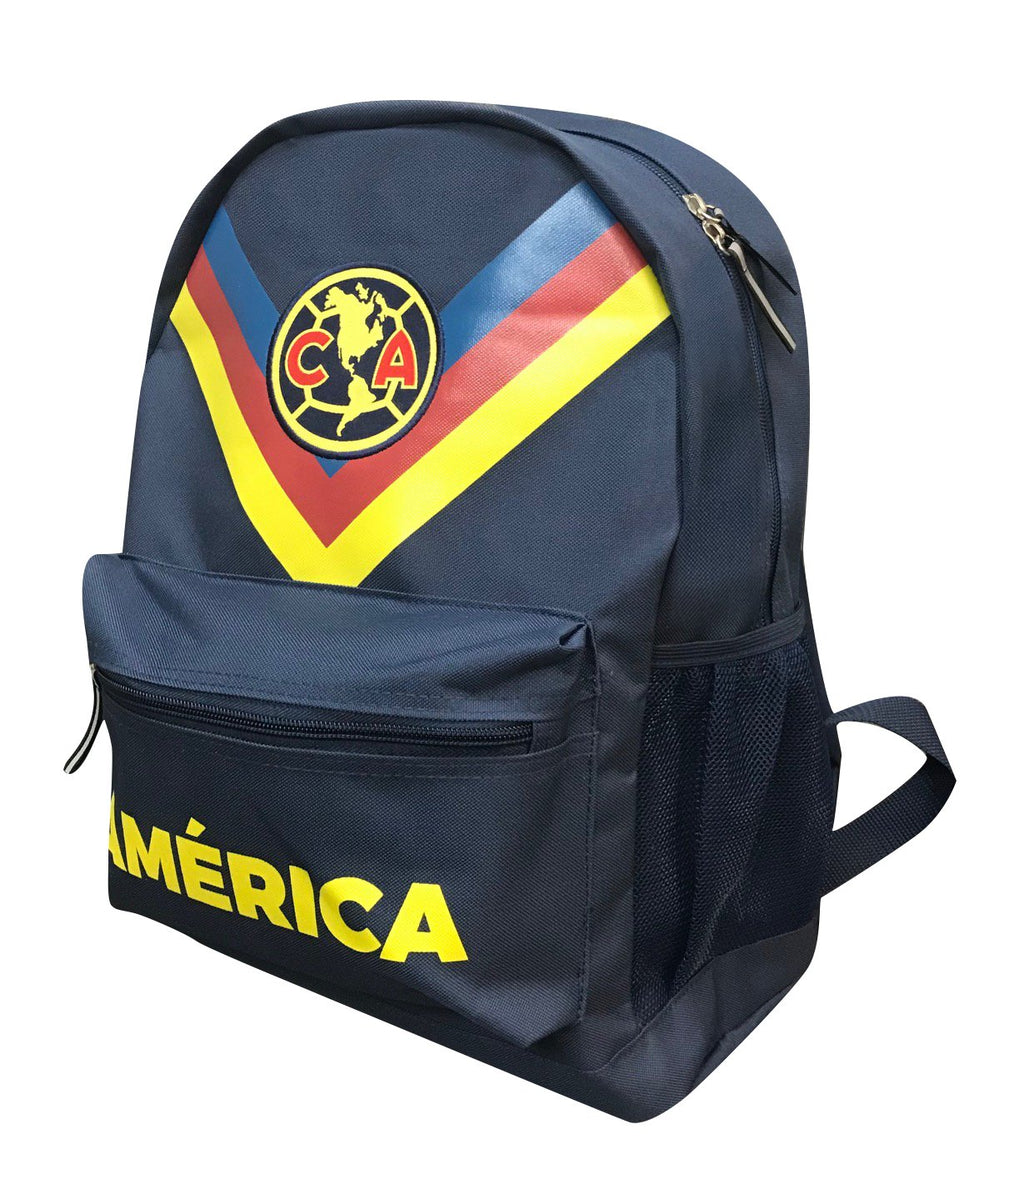 Club América Backpack - Navy Blue